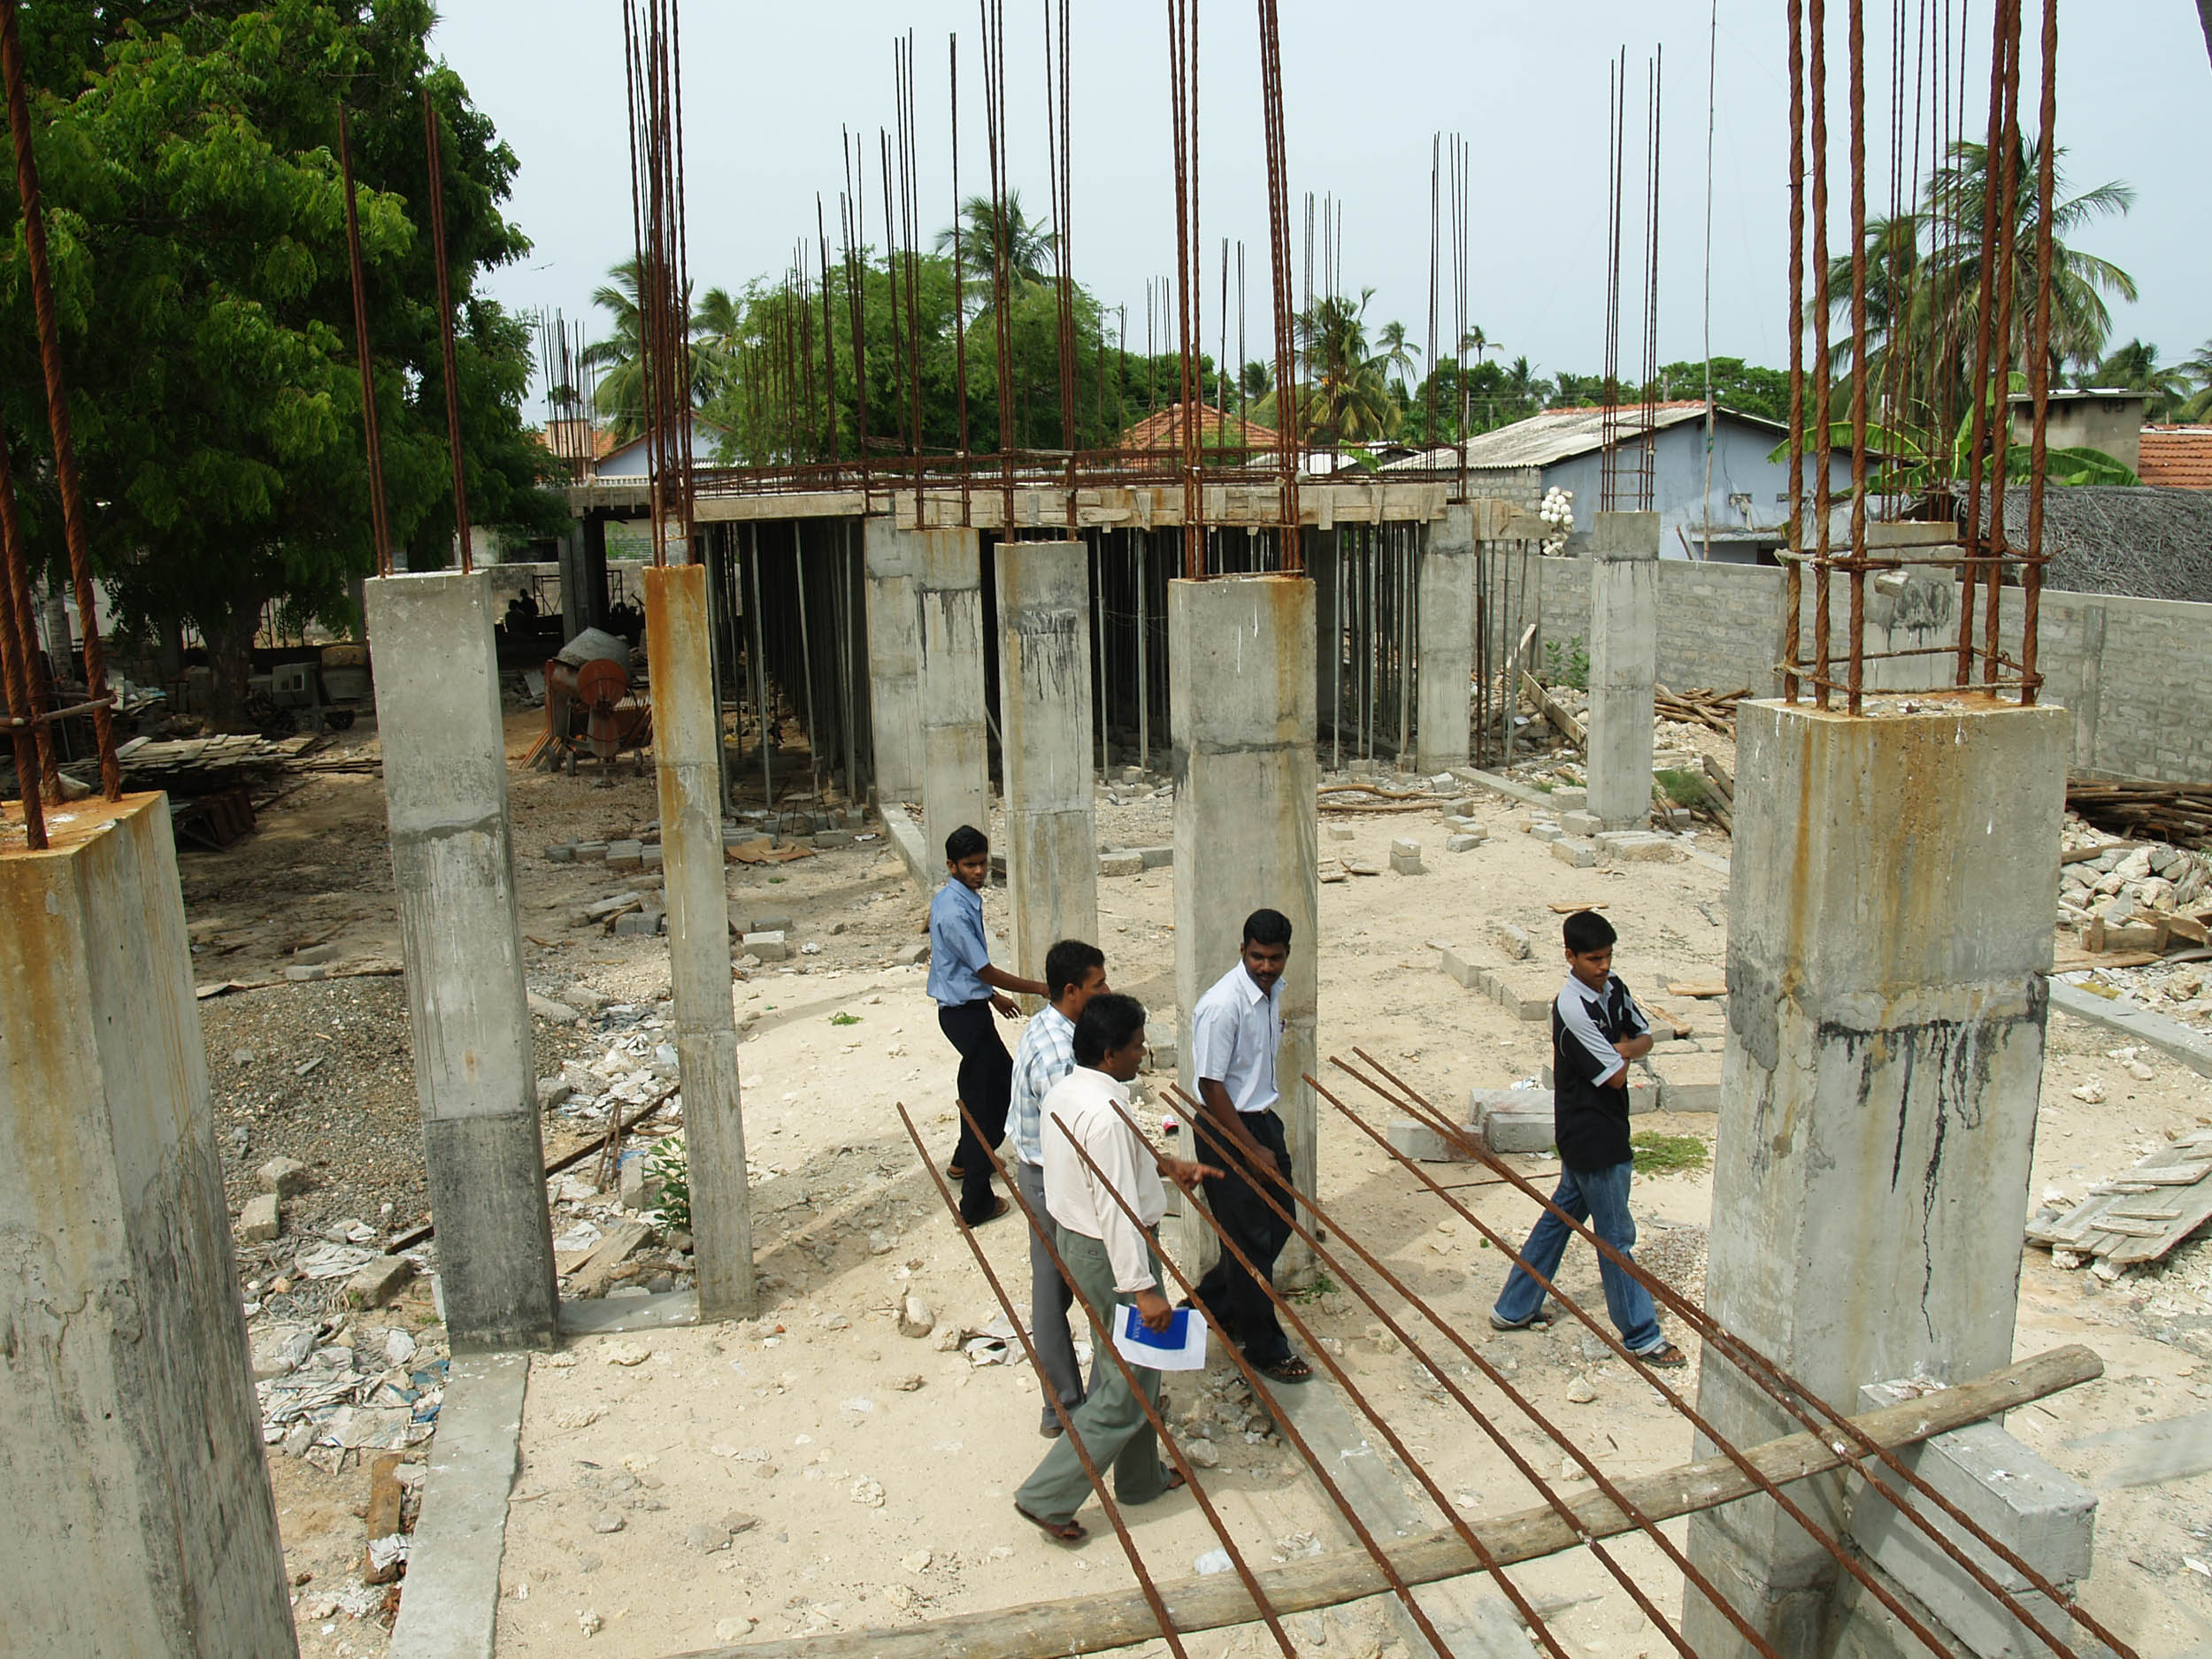 UNICEF and UNOPS staff tour the construction site for the Valvai Sivaguru Vid school in Point Pedro, Jaffna District.  UNICEF is financing and UNOPS is building the school and one other in the area.  Construction has faced many delays due to the security